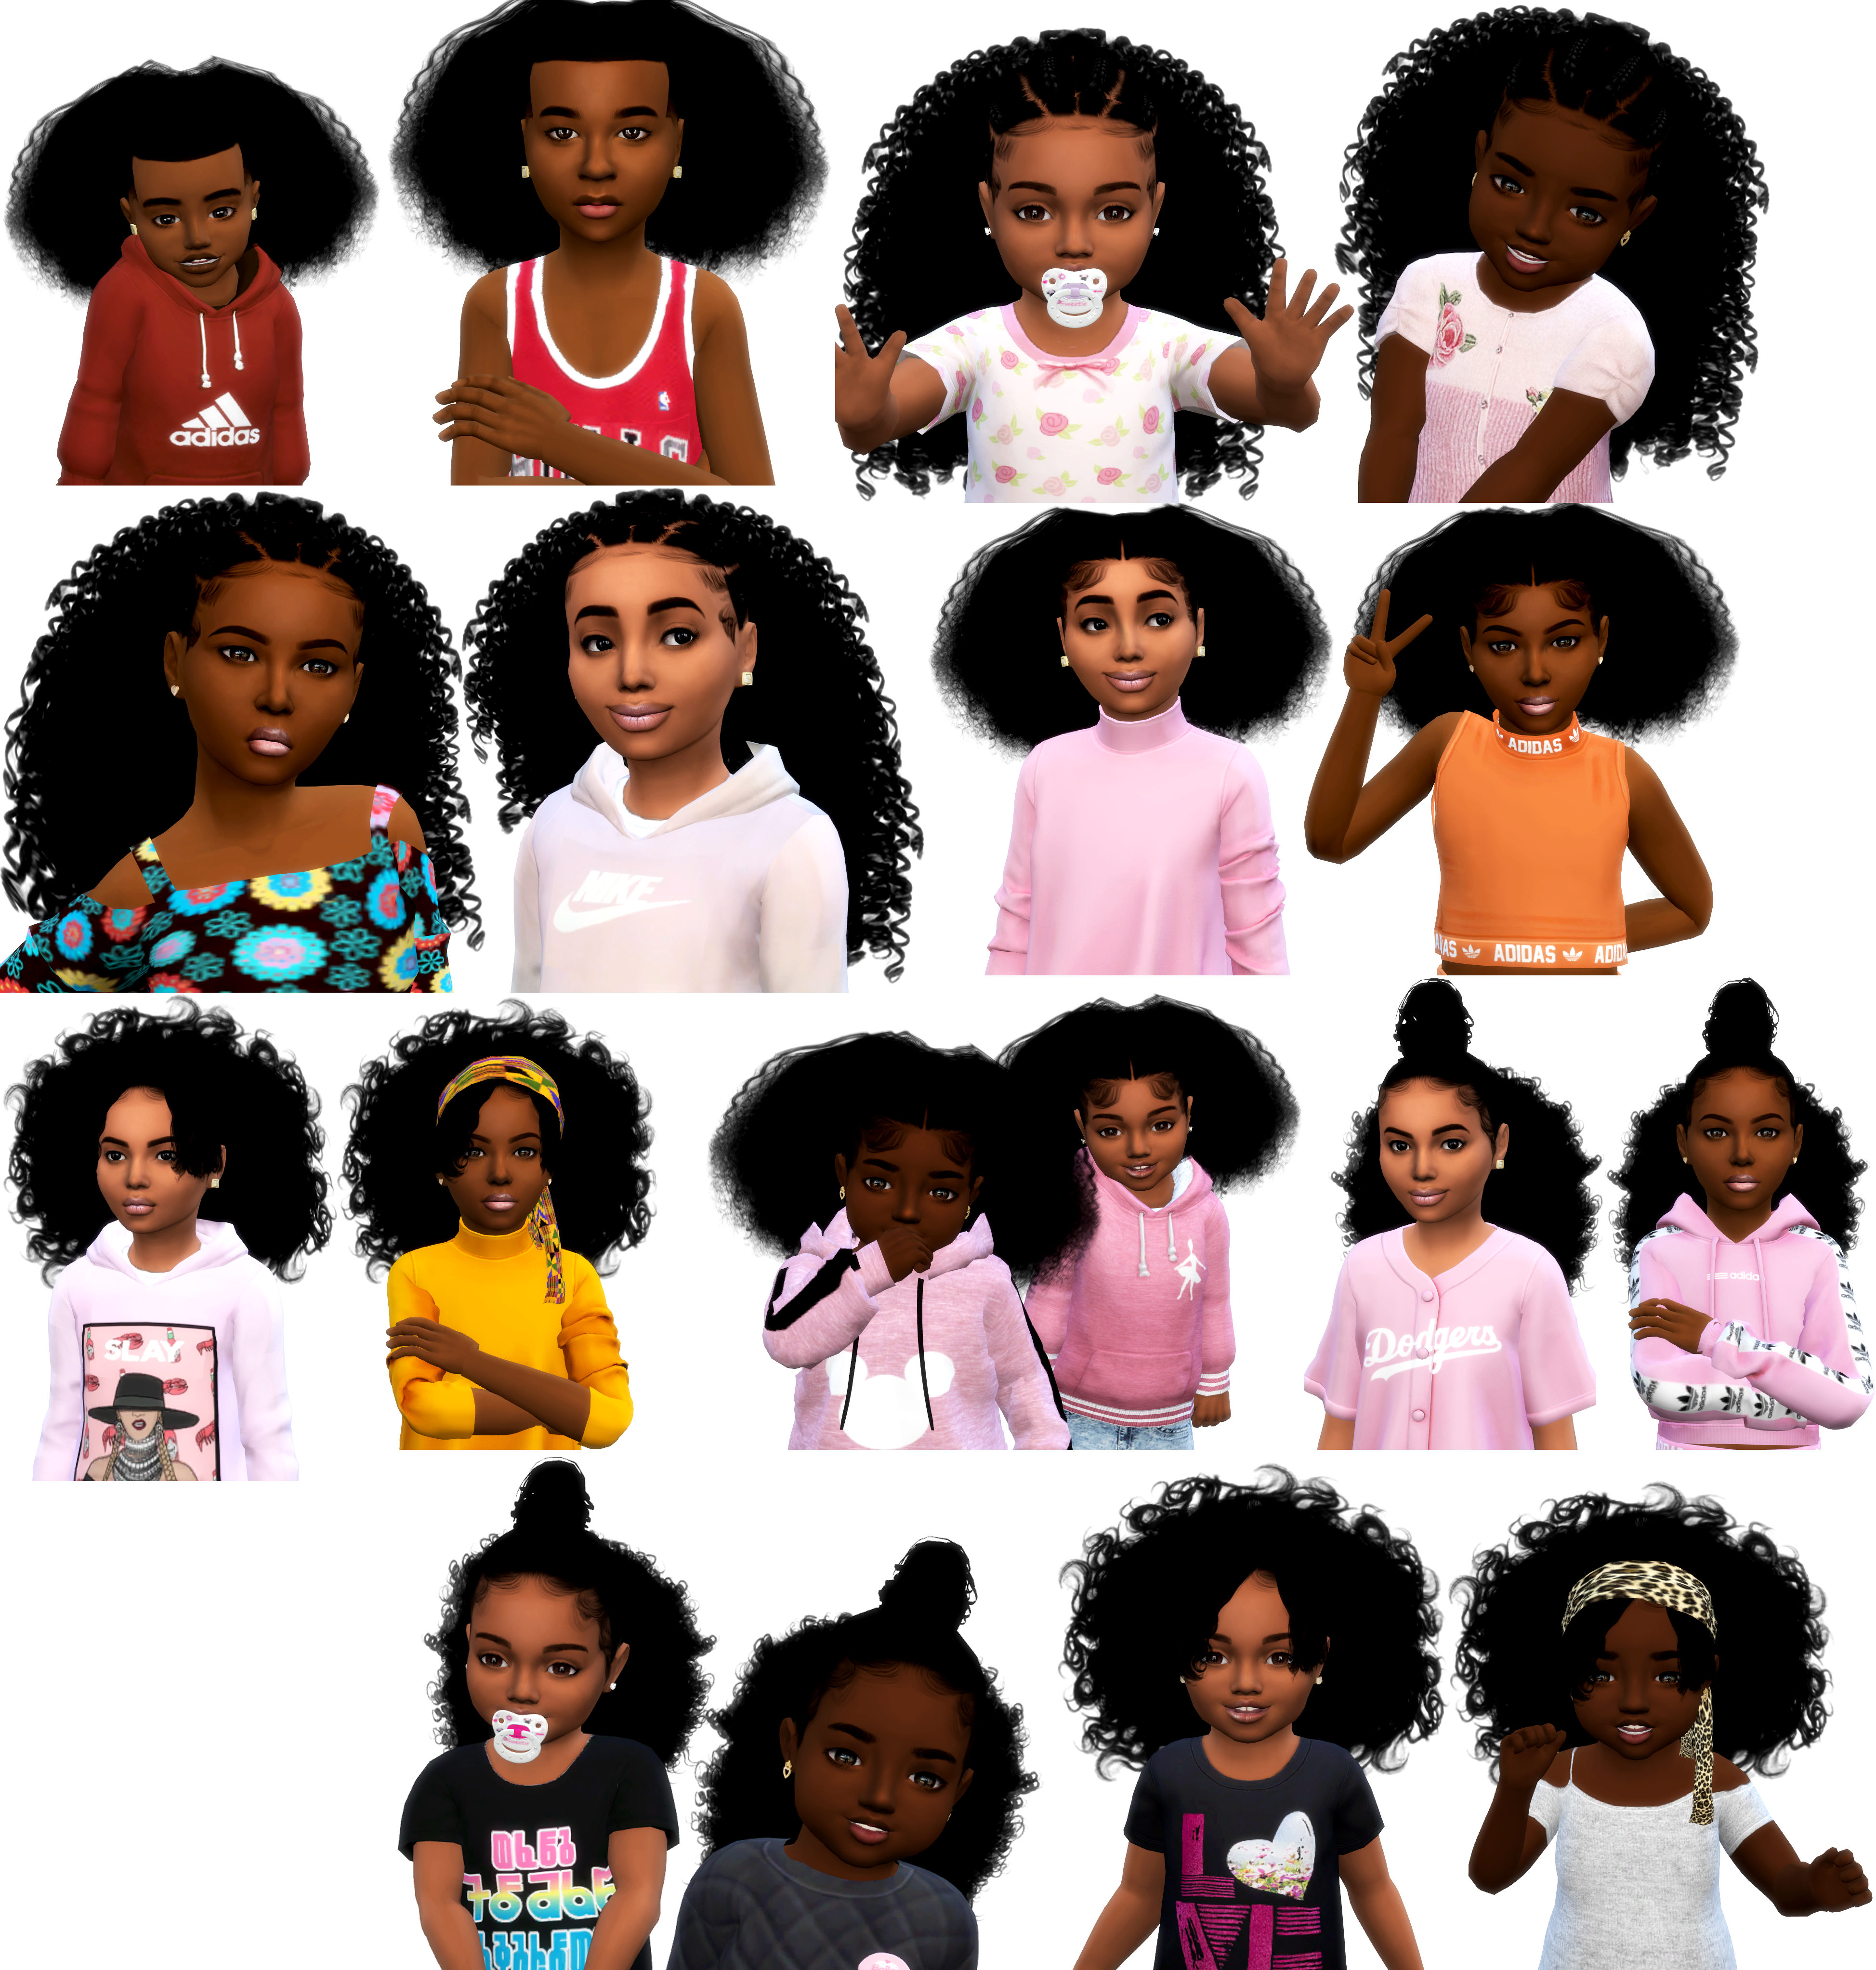 Sims 4 Cc Custom Content Hairstyle Black Simmer African American Child And Toddlers Hair Pack Toddler Hair Sims 4 Sims 4 Curly Hair Toddler Hair